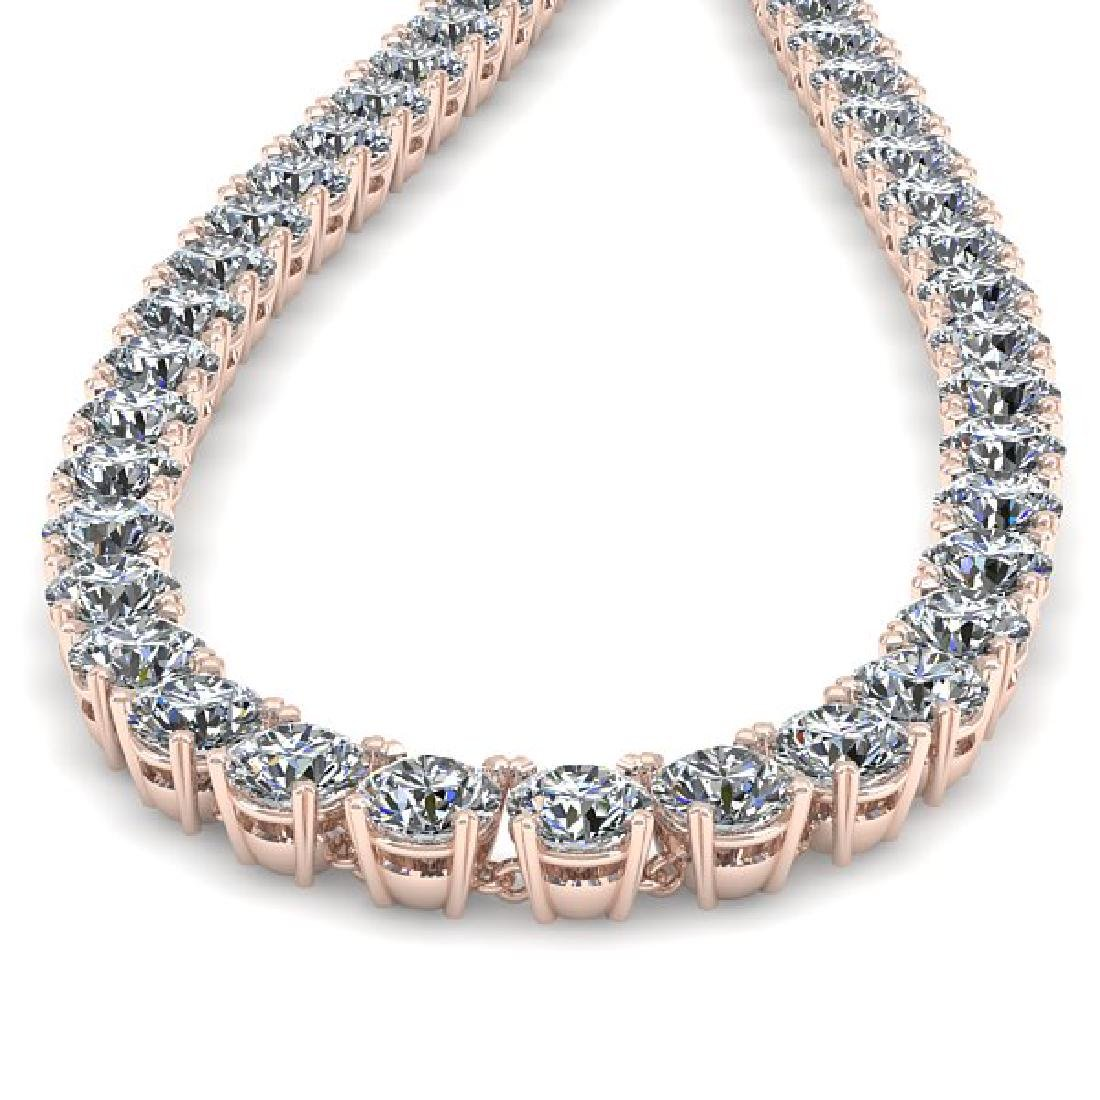 34 CTW Certified SI Diamond Necklace 14K Rose Gold - 2